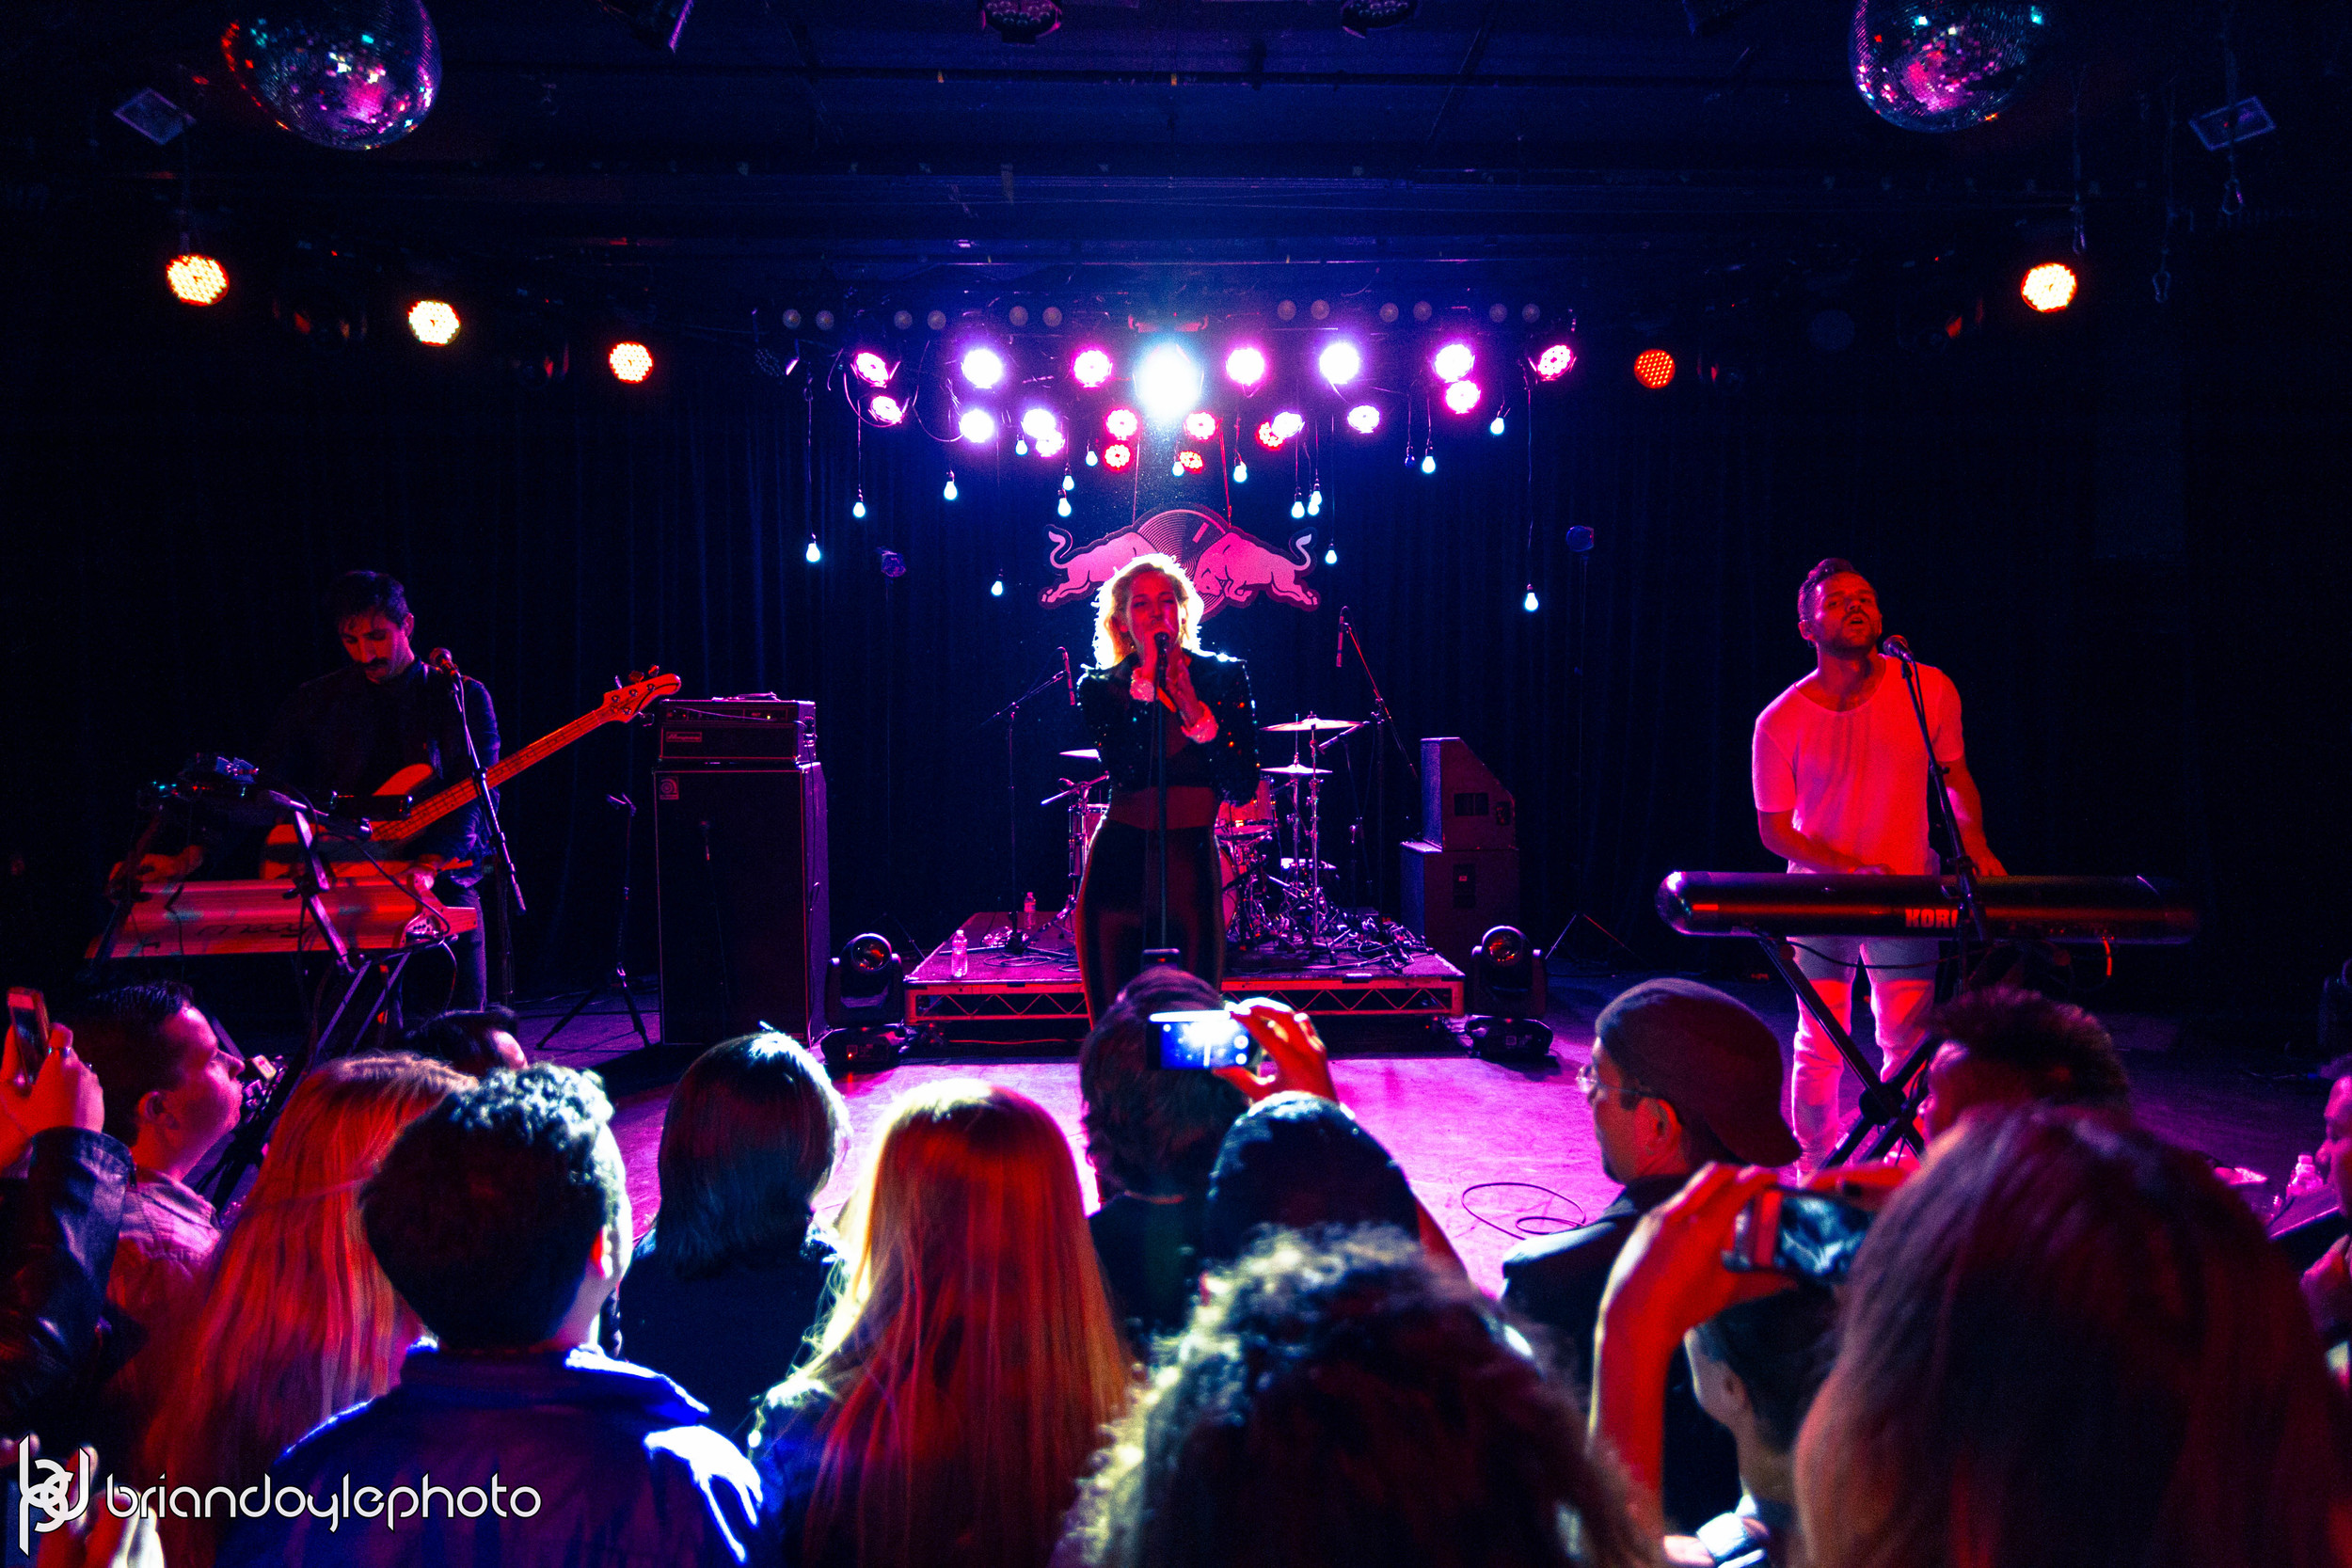 Red Bull - MS MR, Feathers, Electric Sons @ The Roxy 2014.11.02 -60.jpg